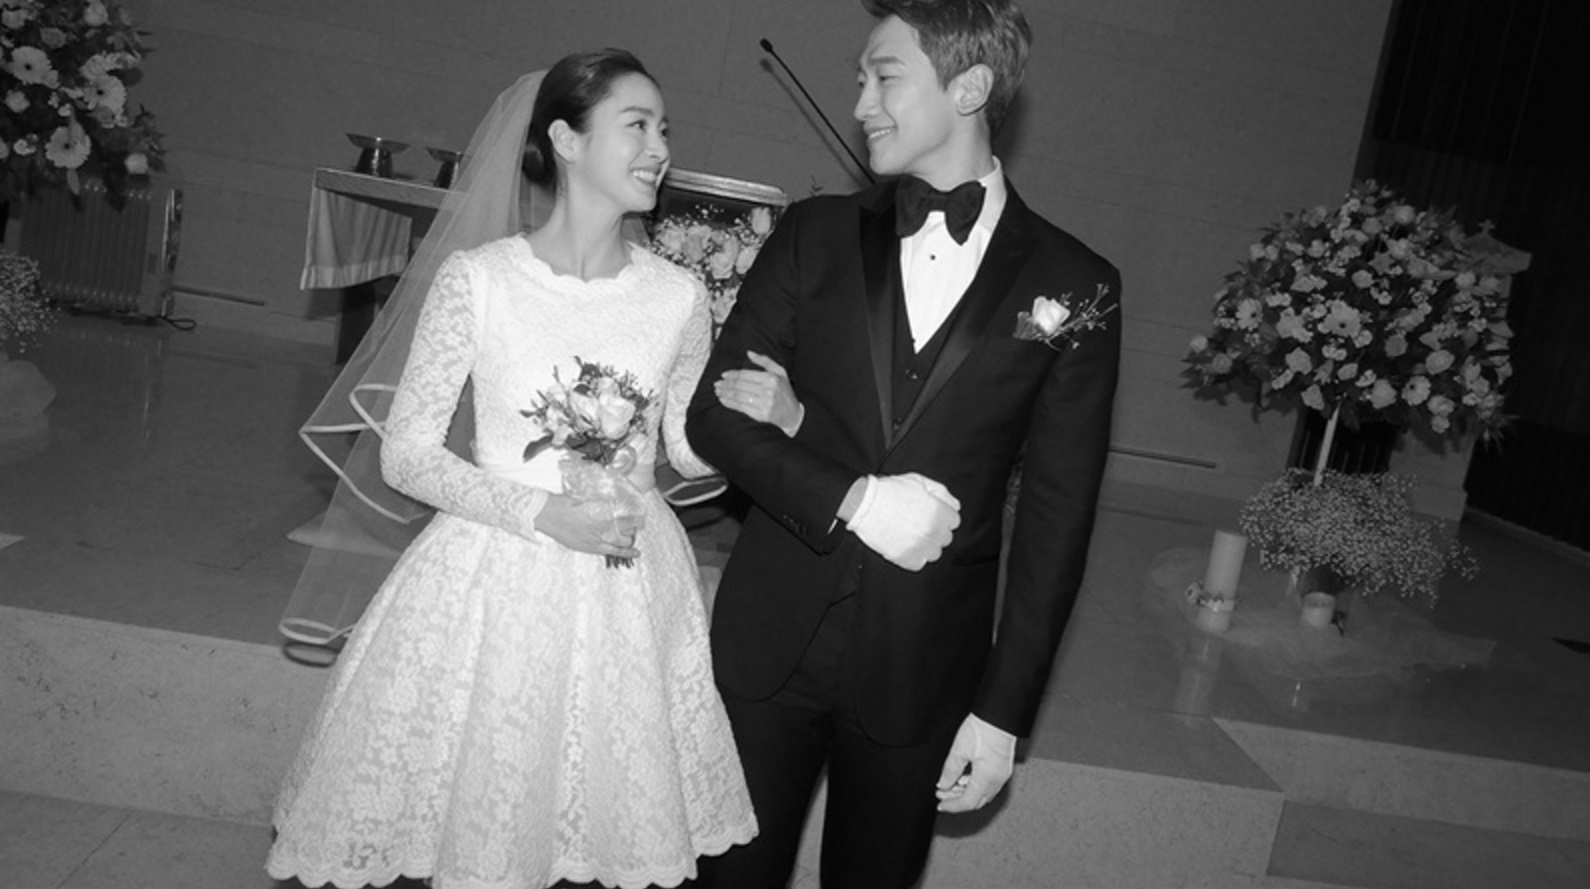 Kim Tae Hee Revealed To Have Helped Her Stylist Design Her Wedding Dress